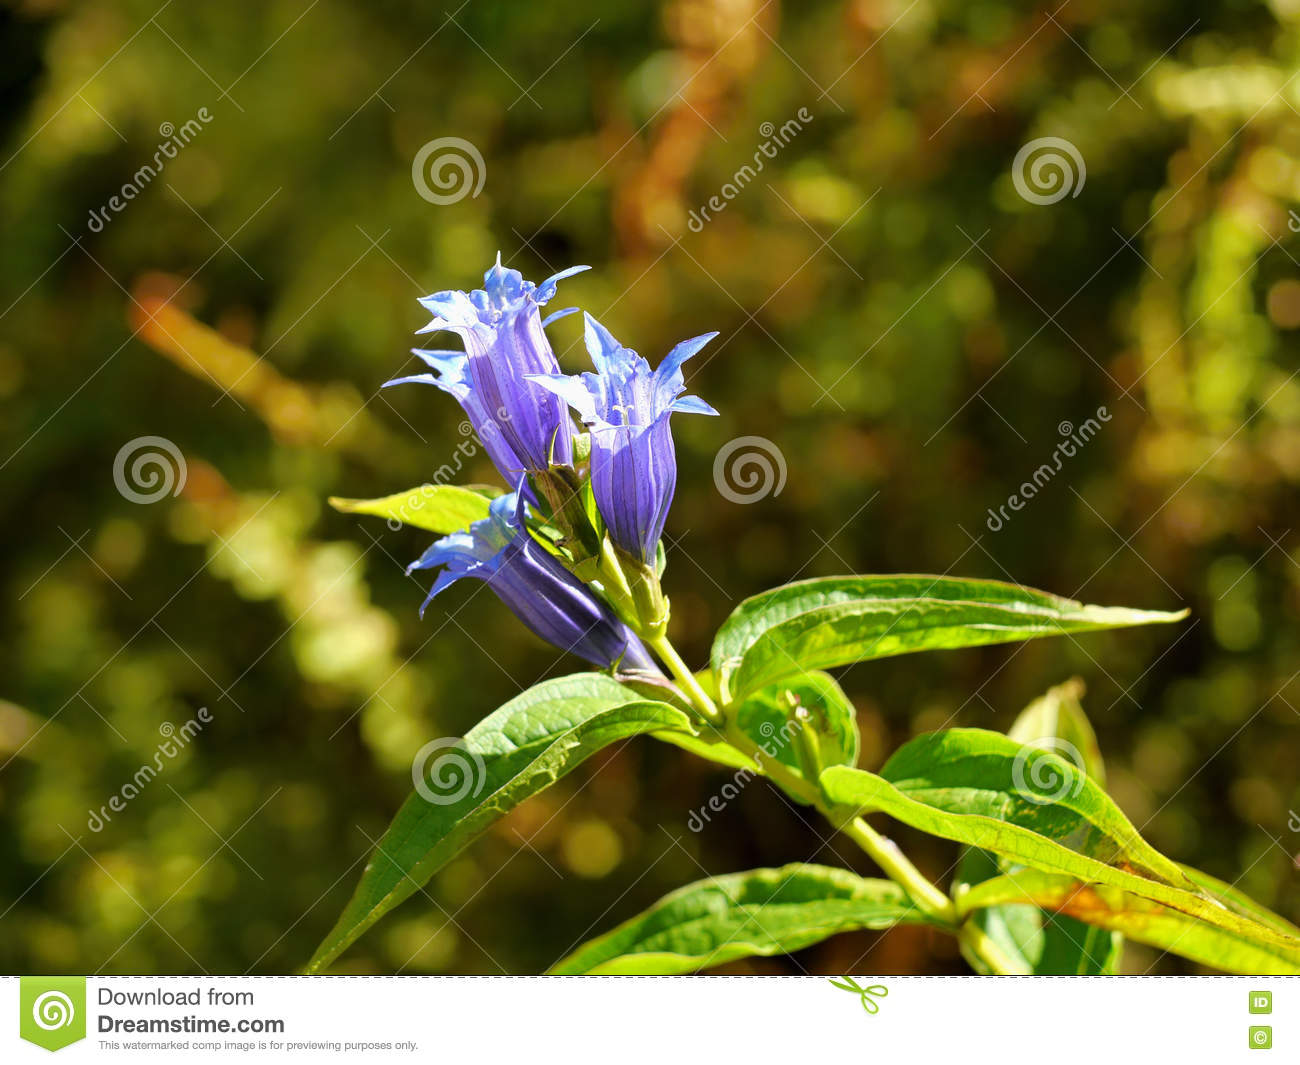 Gentian violet flower stock image image of petals meadow 77690687 royalty free stock photo izmirmasajfo Image collections